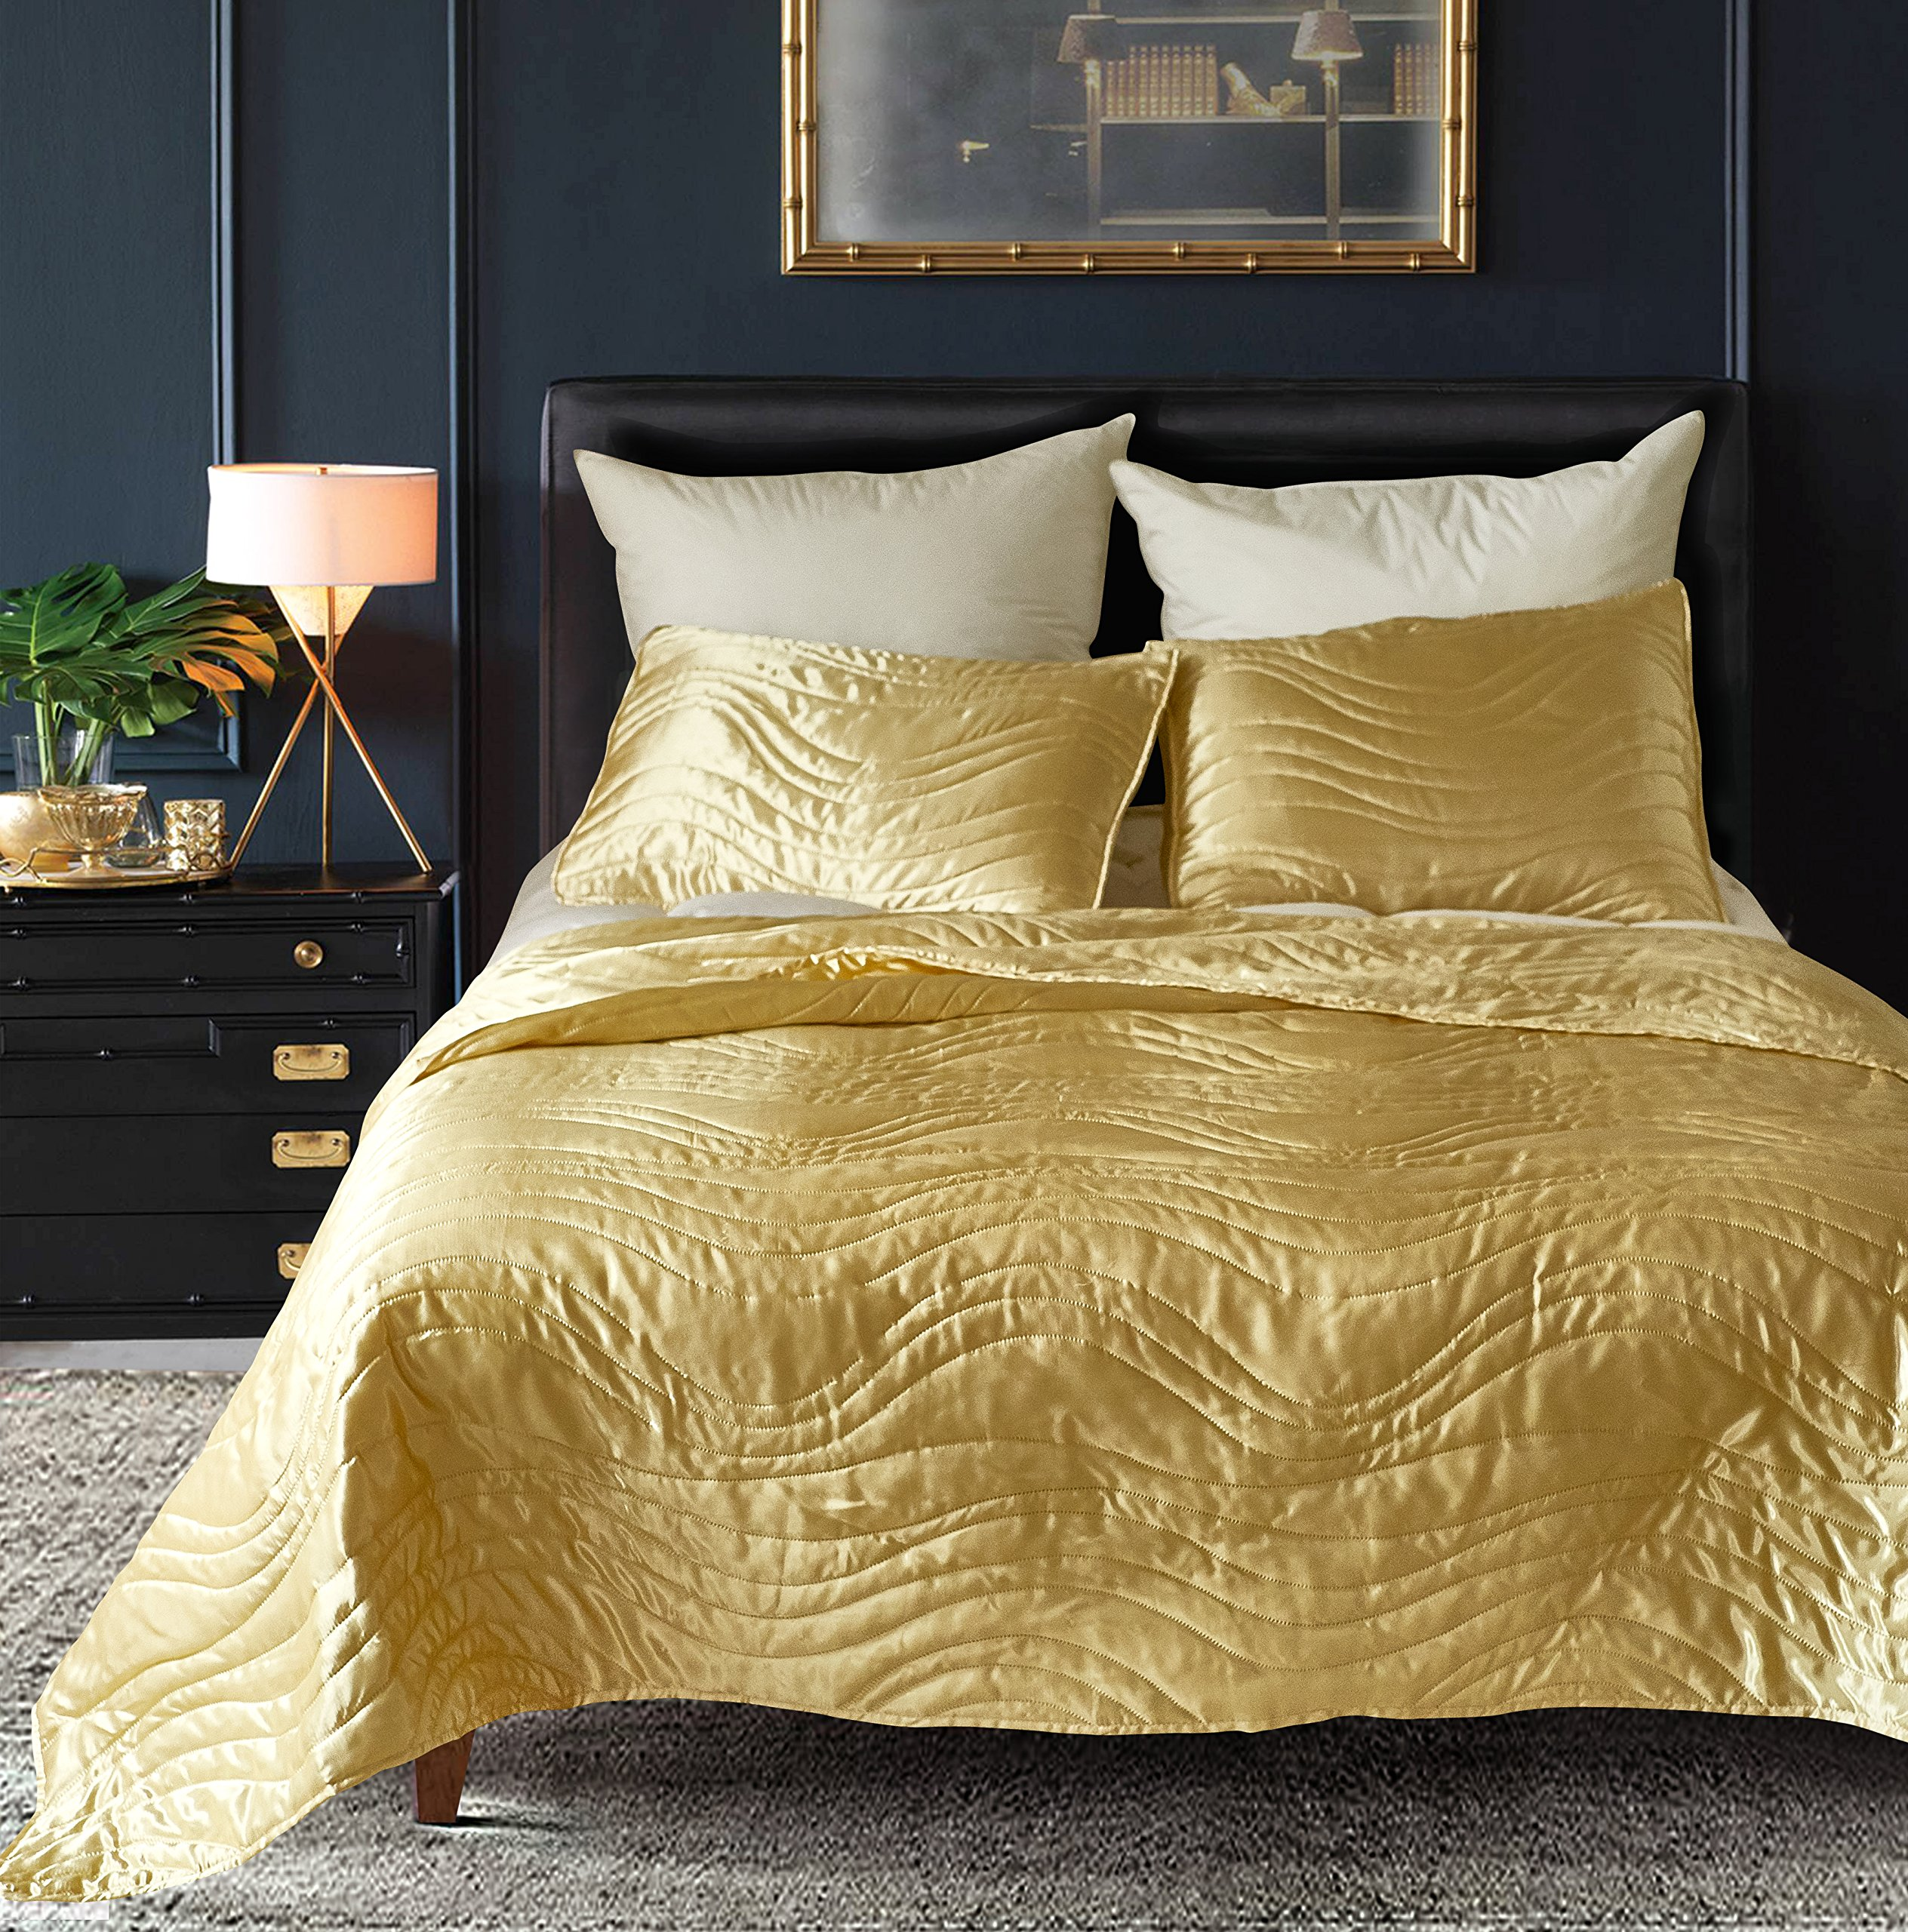 DuShow imitated silk Solid Color Bedspread Coverlet Set -3 Piece (1 Bedspread + 2 Pillow Shams)-Queen Size(90'' 90'')-Lightweight Comfortable-Golden